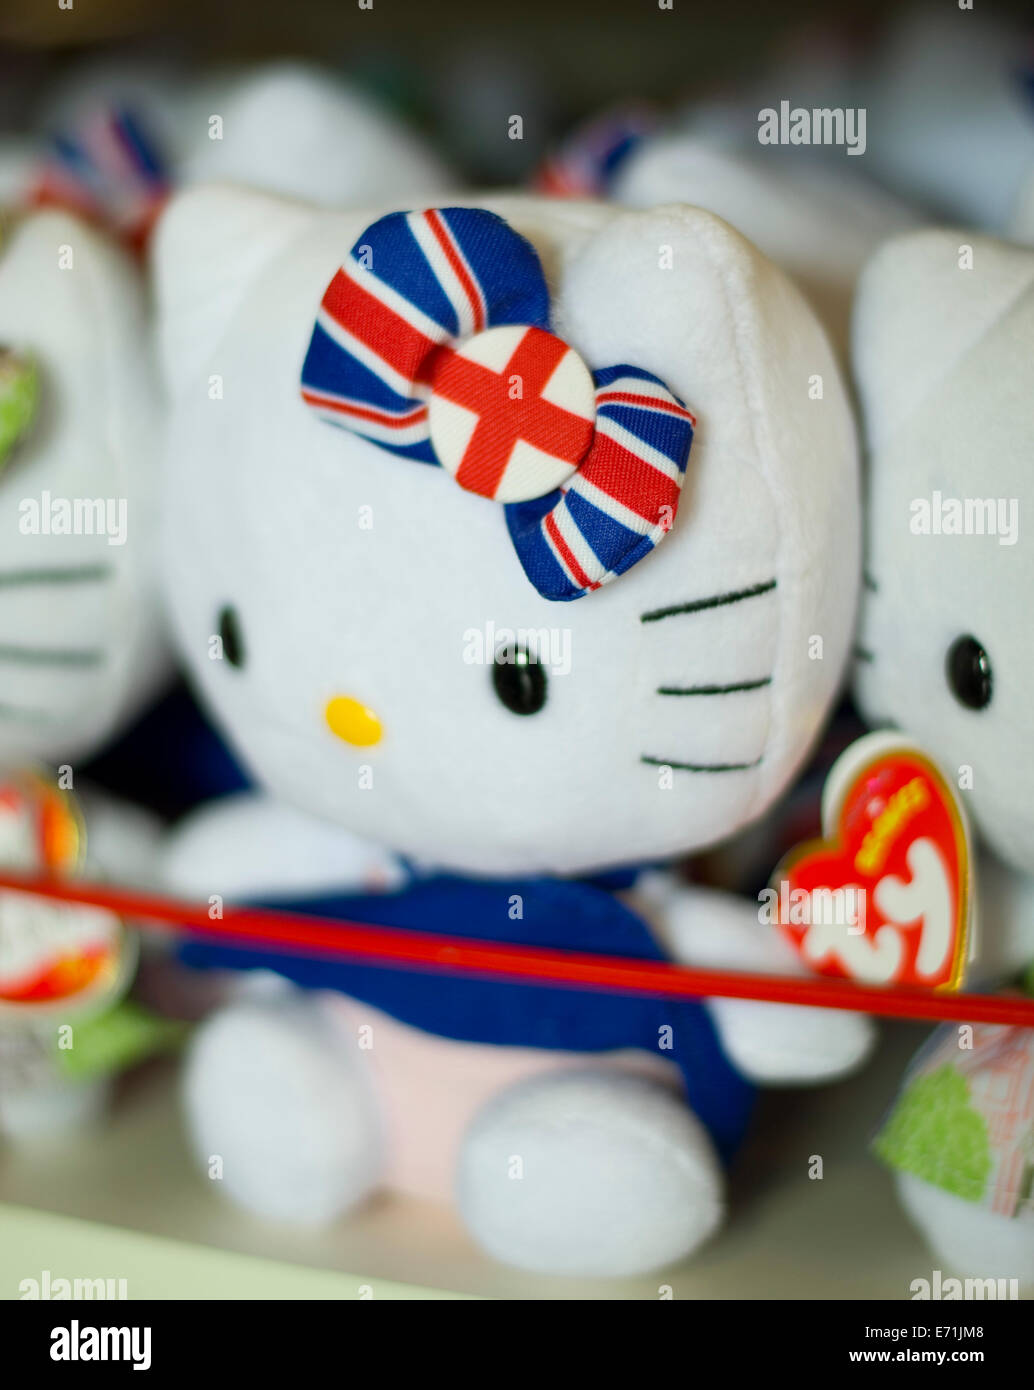 TY brand Hello Kitty toy. - Stock Image